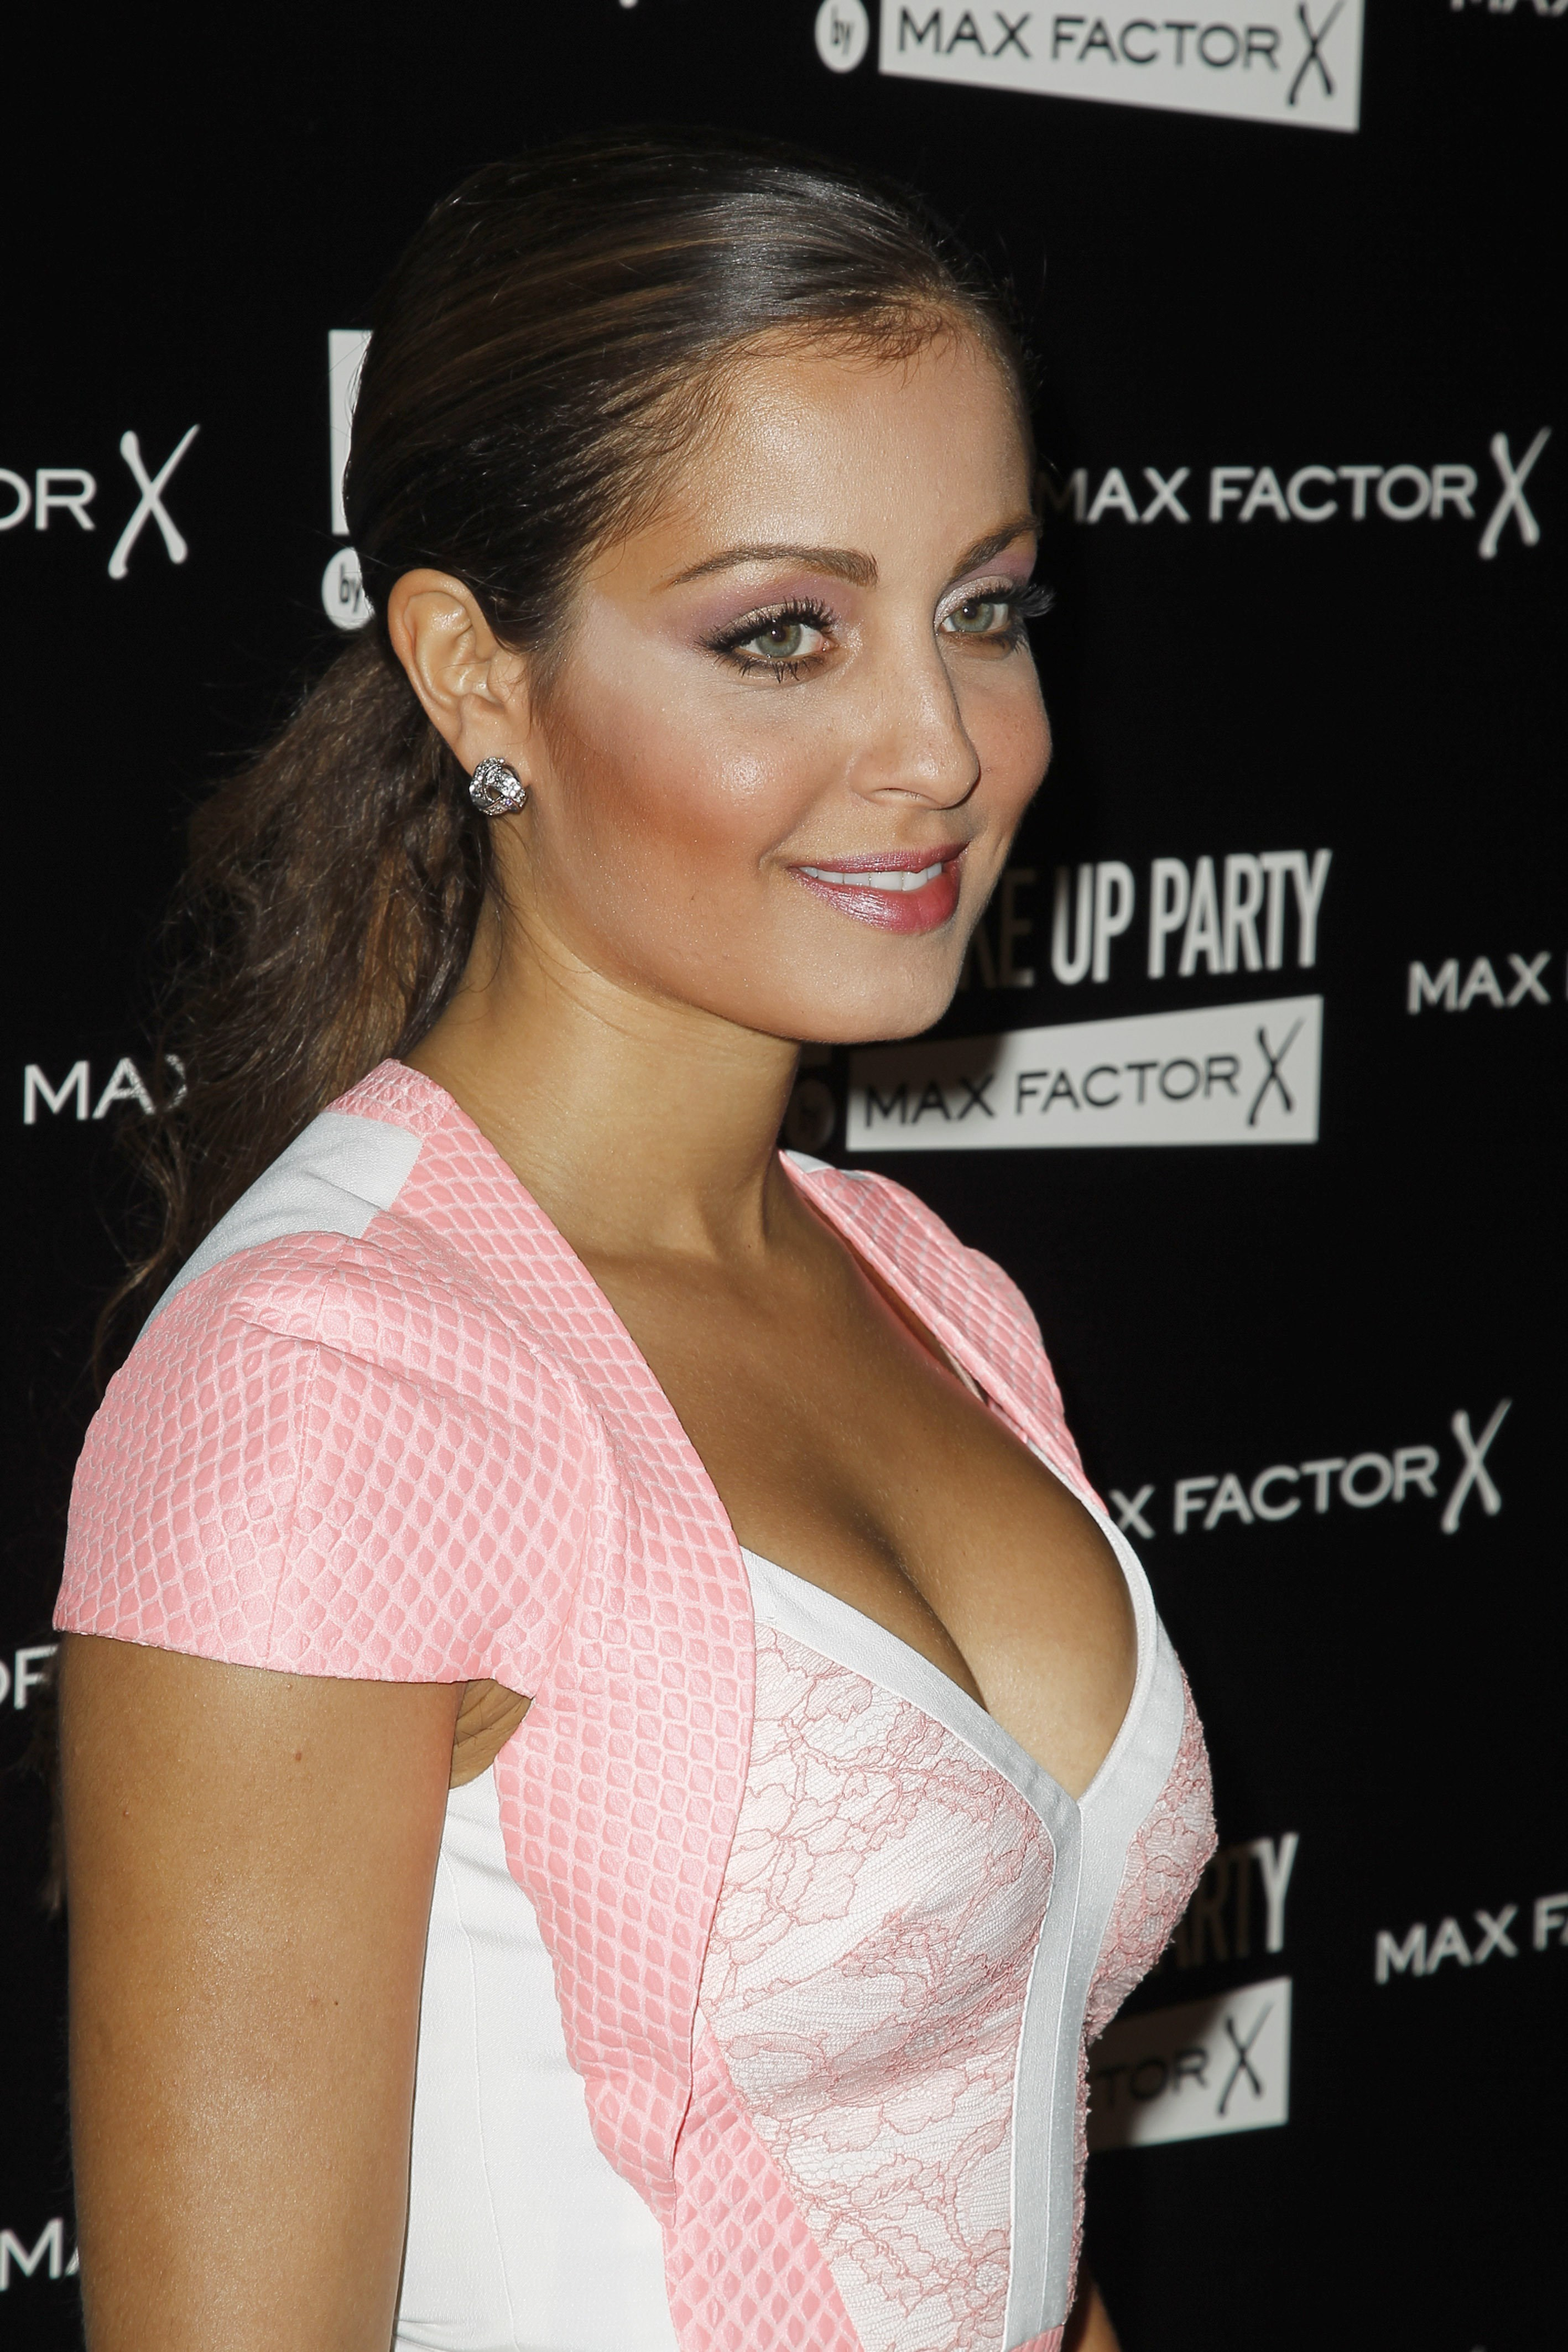 Barbie Hd Wallpapers Free Download Hiba Abouk Known People Famous People News And Biographies